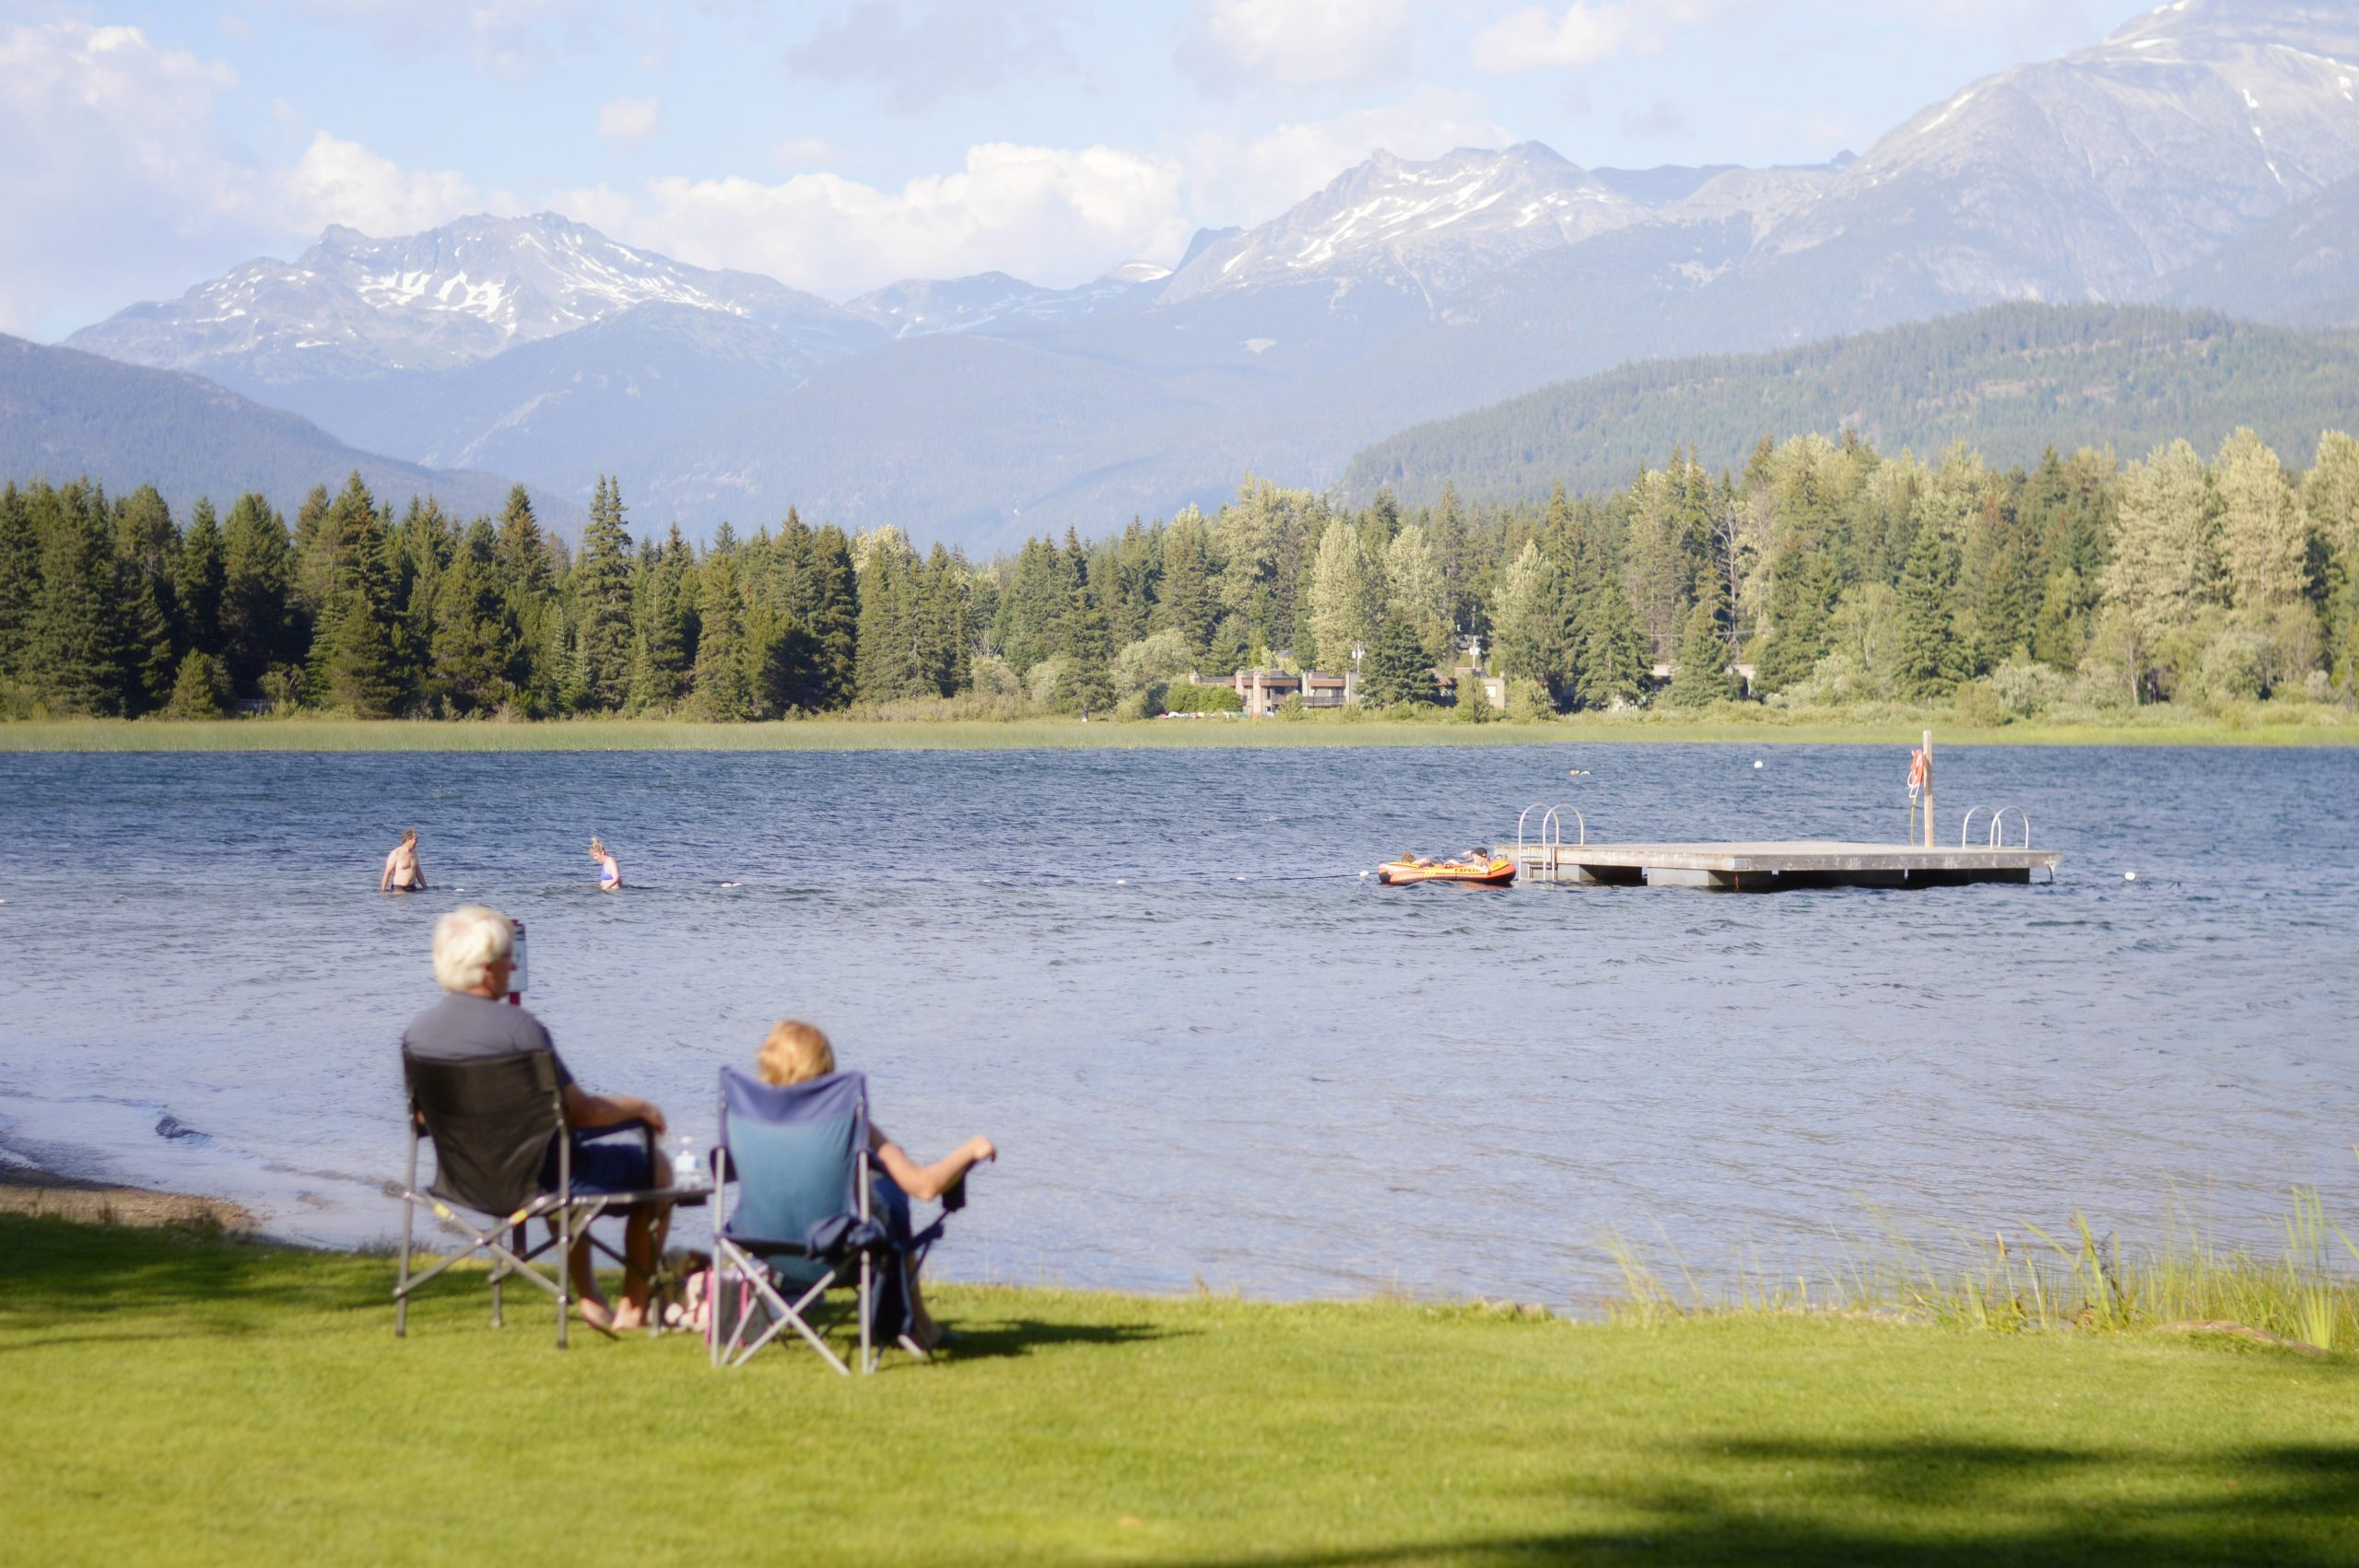 Senior couple sitting in chairs facing a lake with mountains in the background